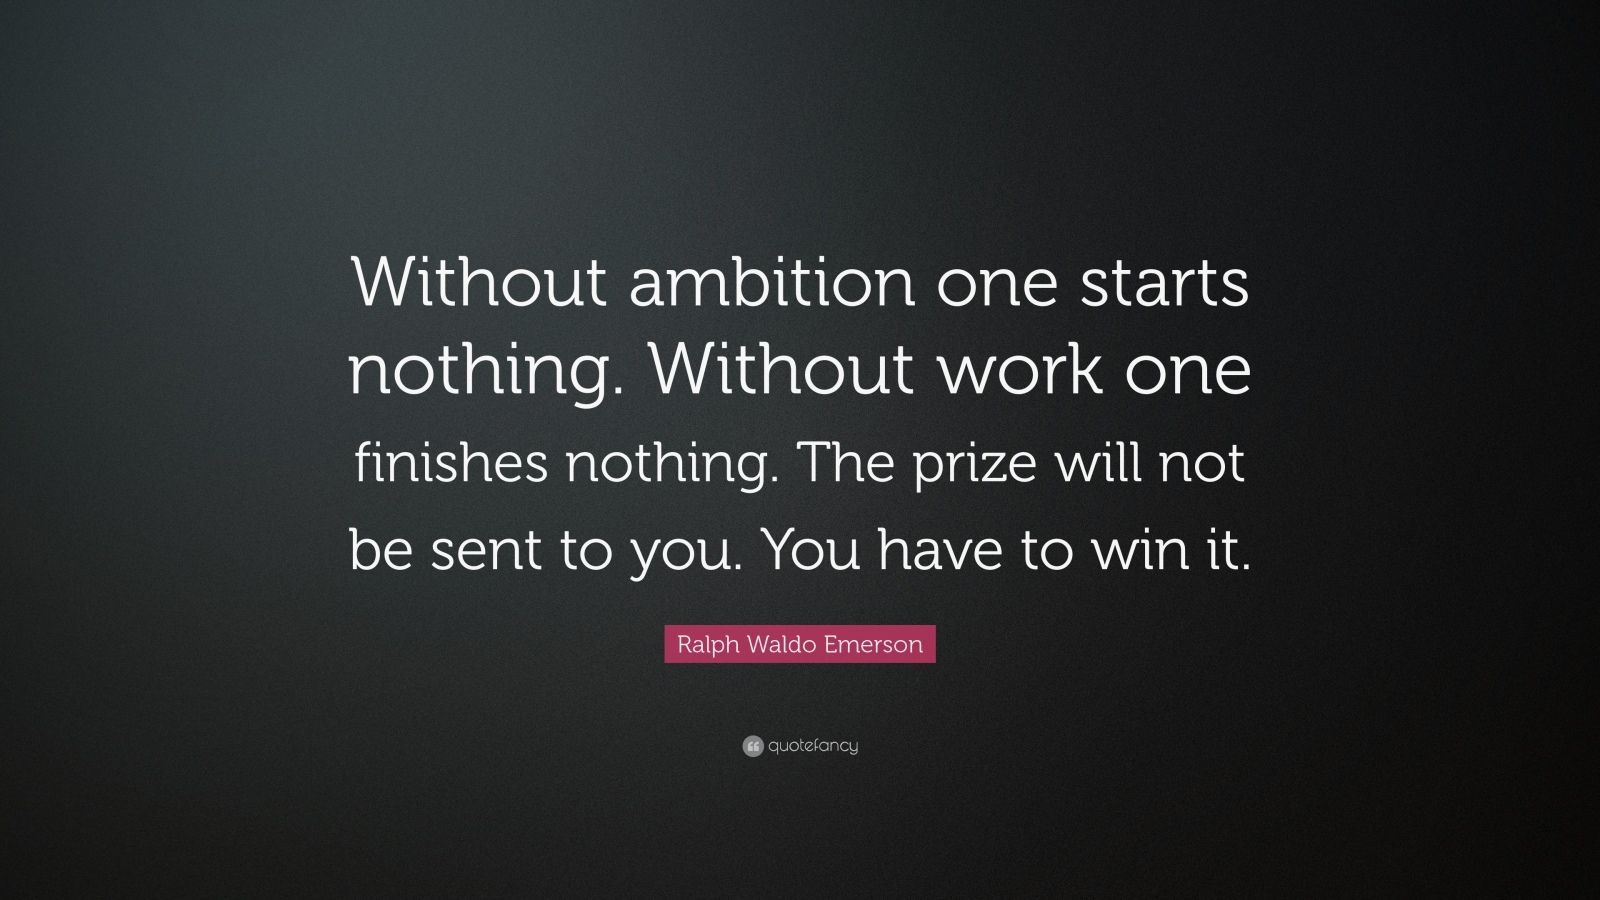 Conor Mcgregor Quotes Wallpapers Ralph Waldo Emerson Quote Without Ambition One Starts